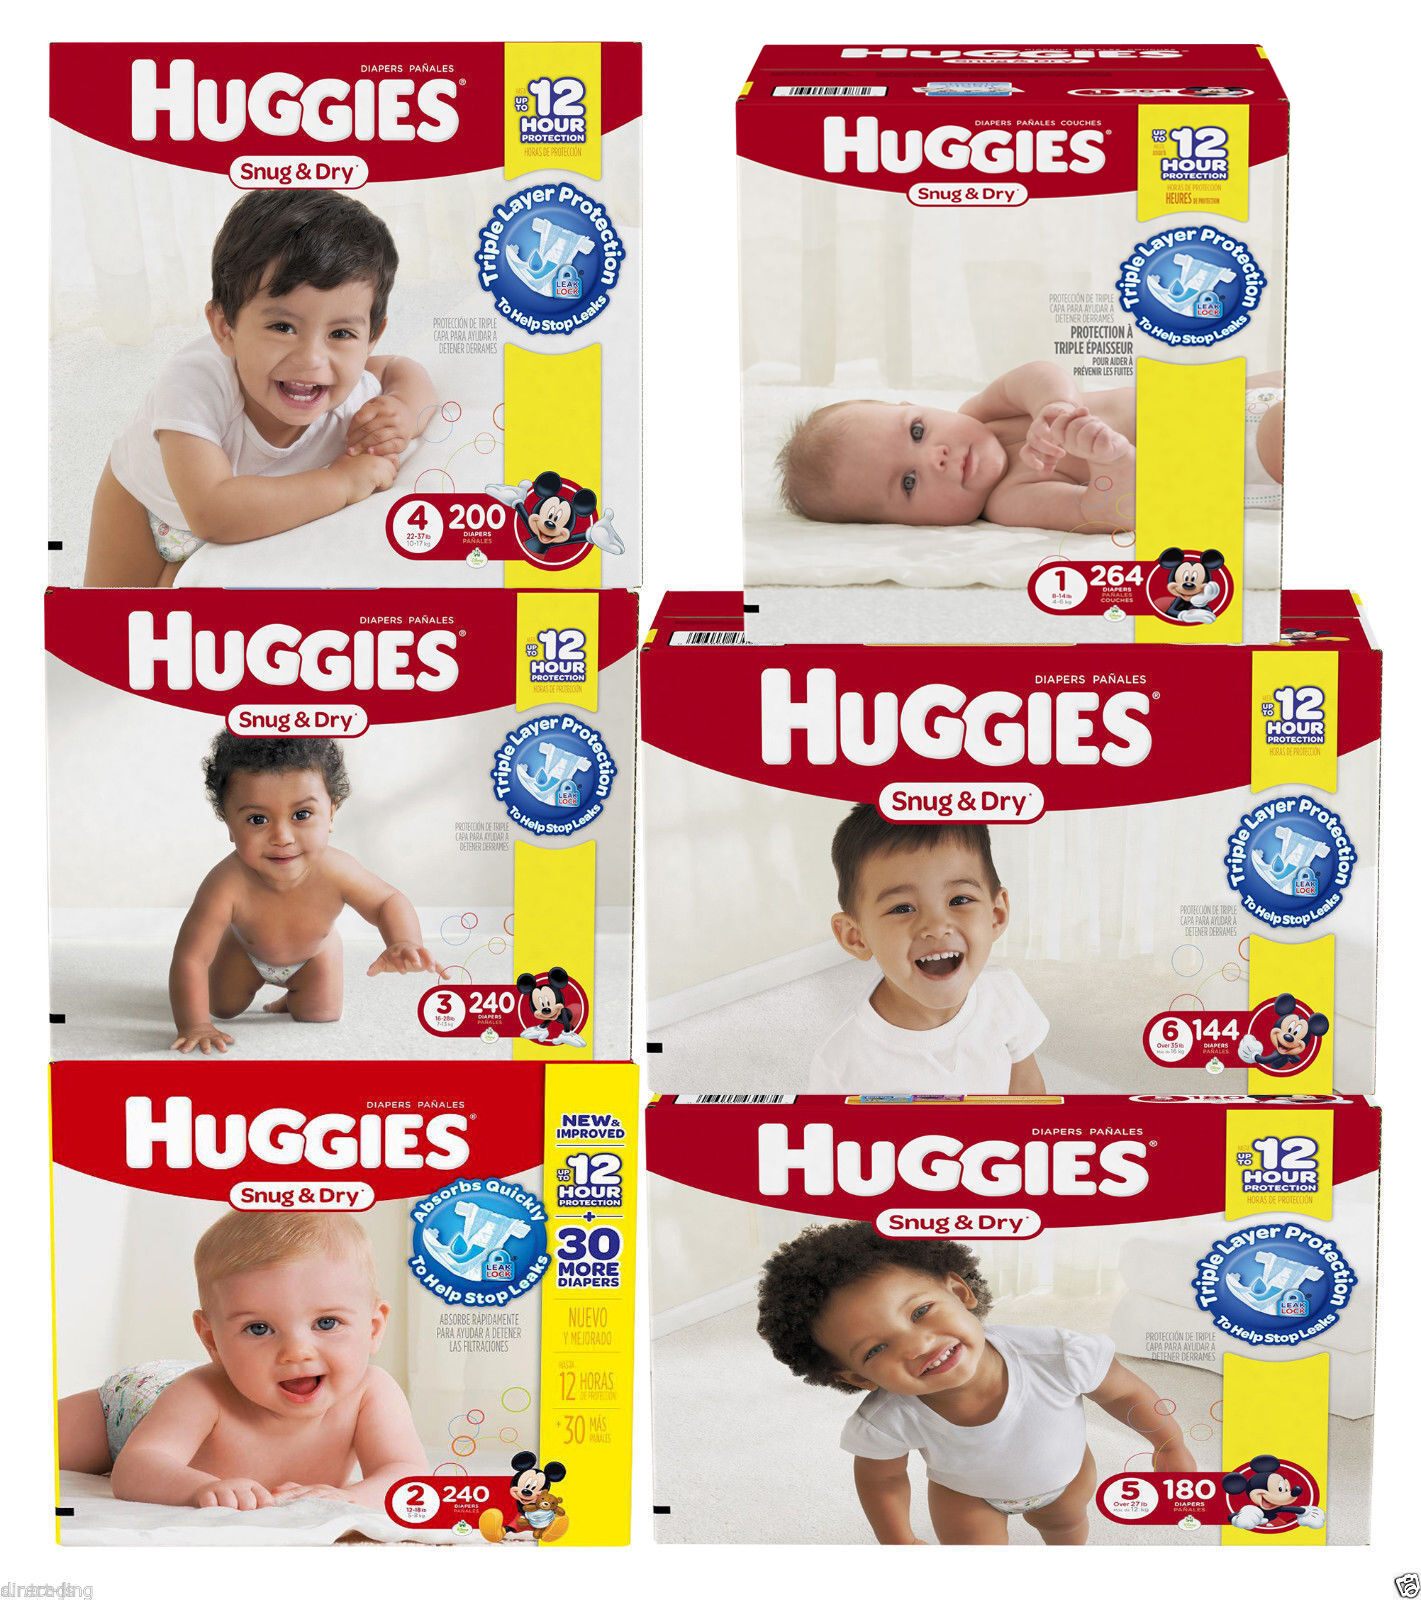 Huggies Snug and Dry Disposable Baby Diapers Size 1, 2, 3, 4, 5 & 6 - BRAND NEW! 1